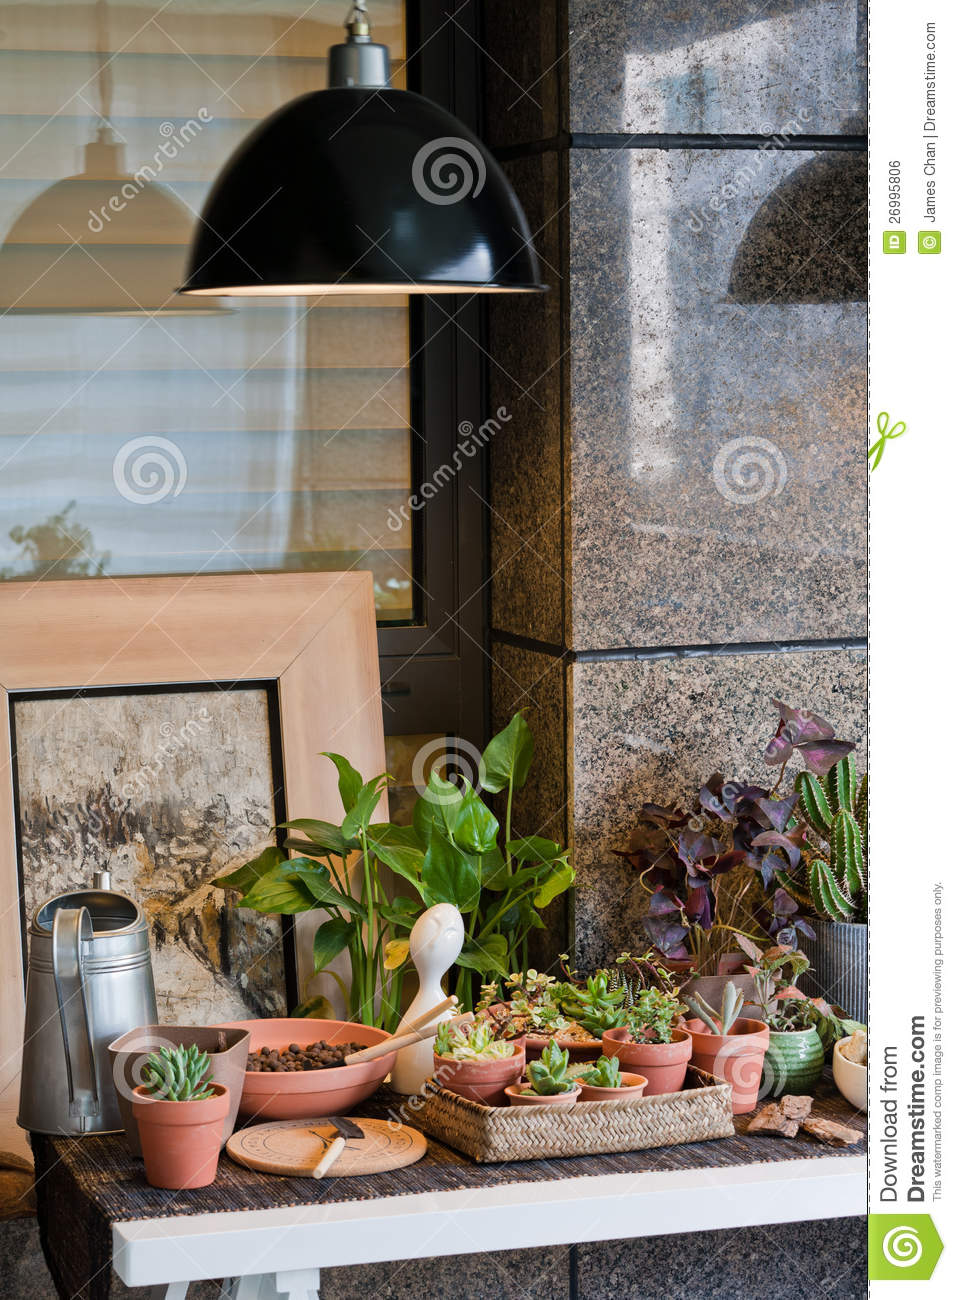 Small Garden Potted Plants Stock Photo Image Of Gallery 26995806